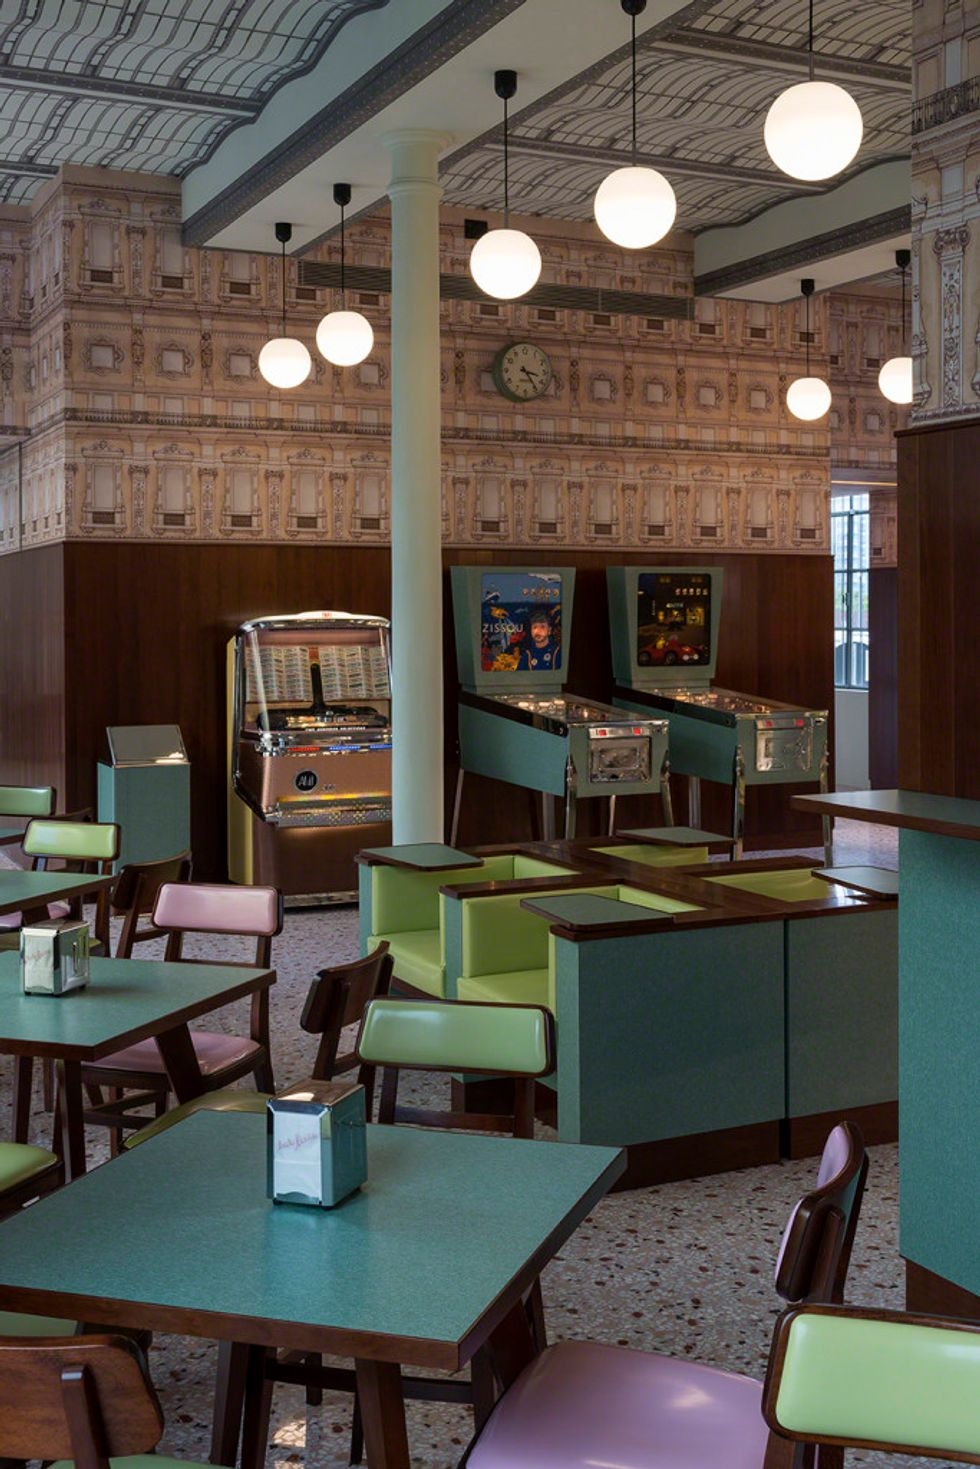 Inside Wes Anderson's New Cafe in Milan